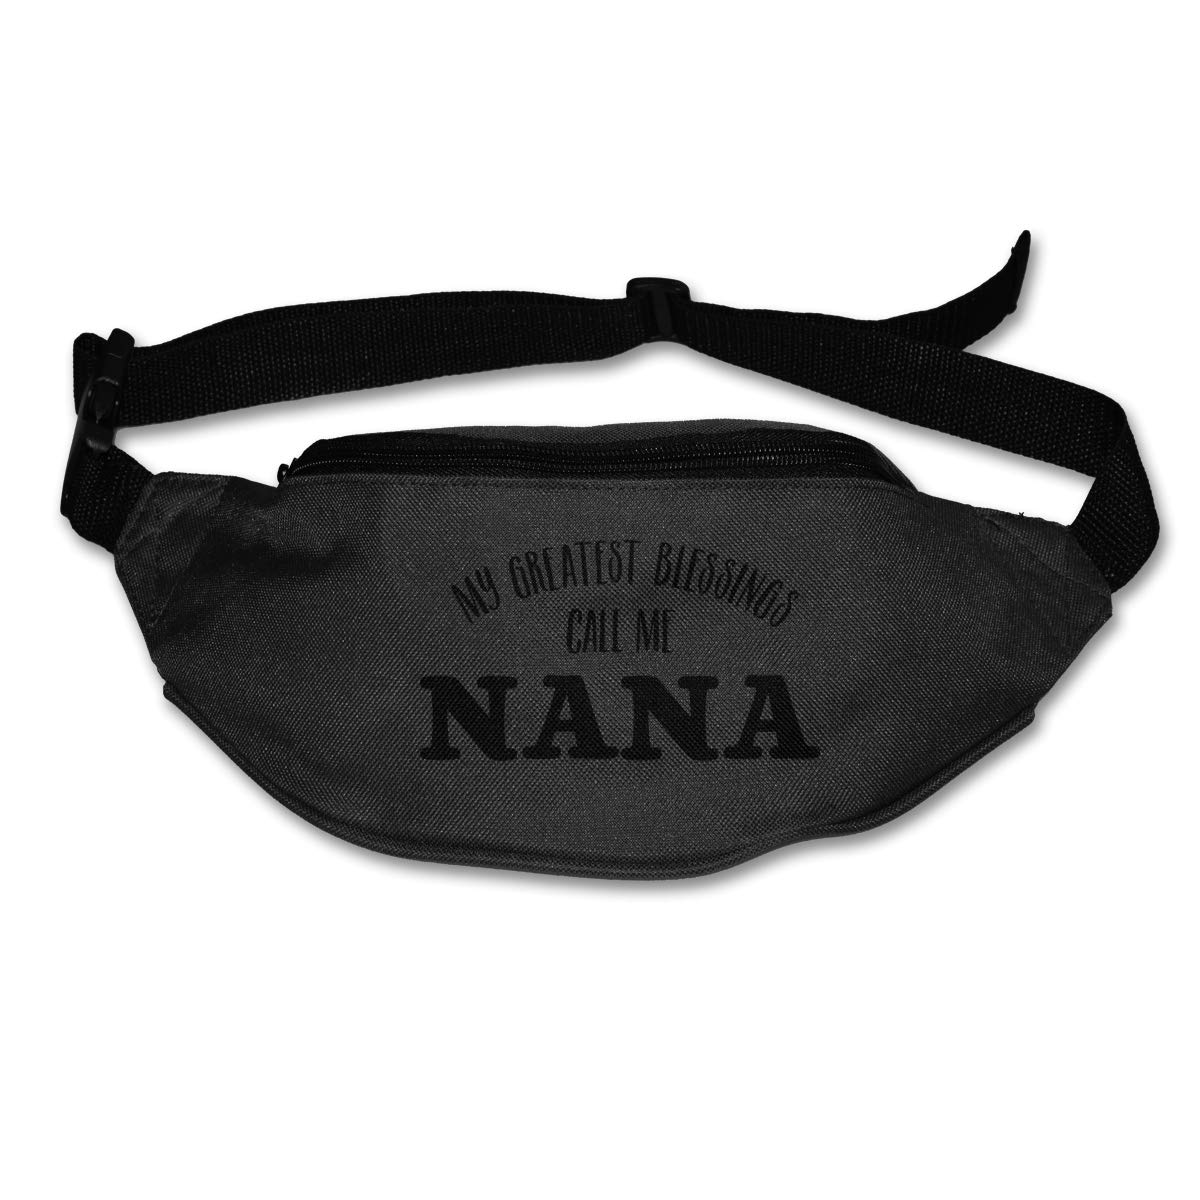 My Greatest Blessings Call Me Nana Waist Bag Fanny Pack Adjustable For Travel